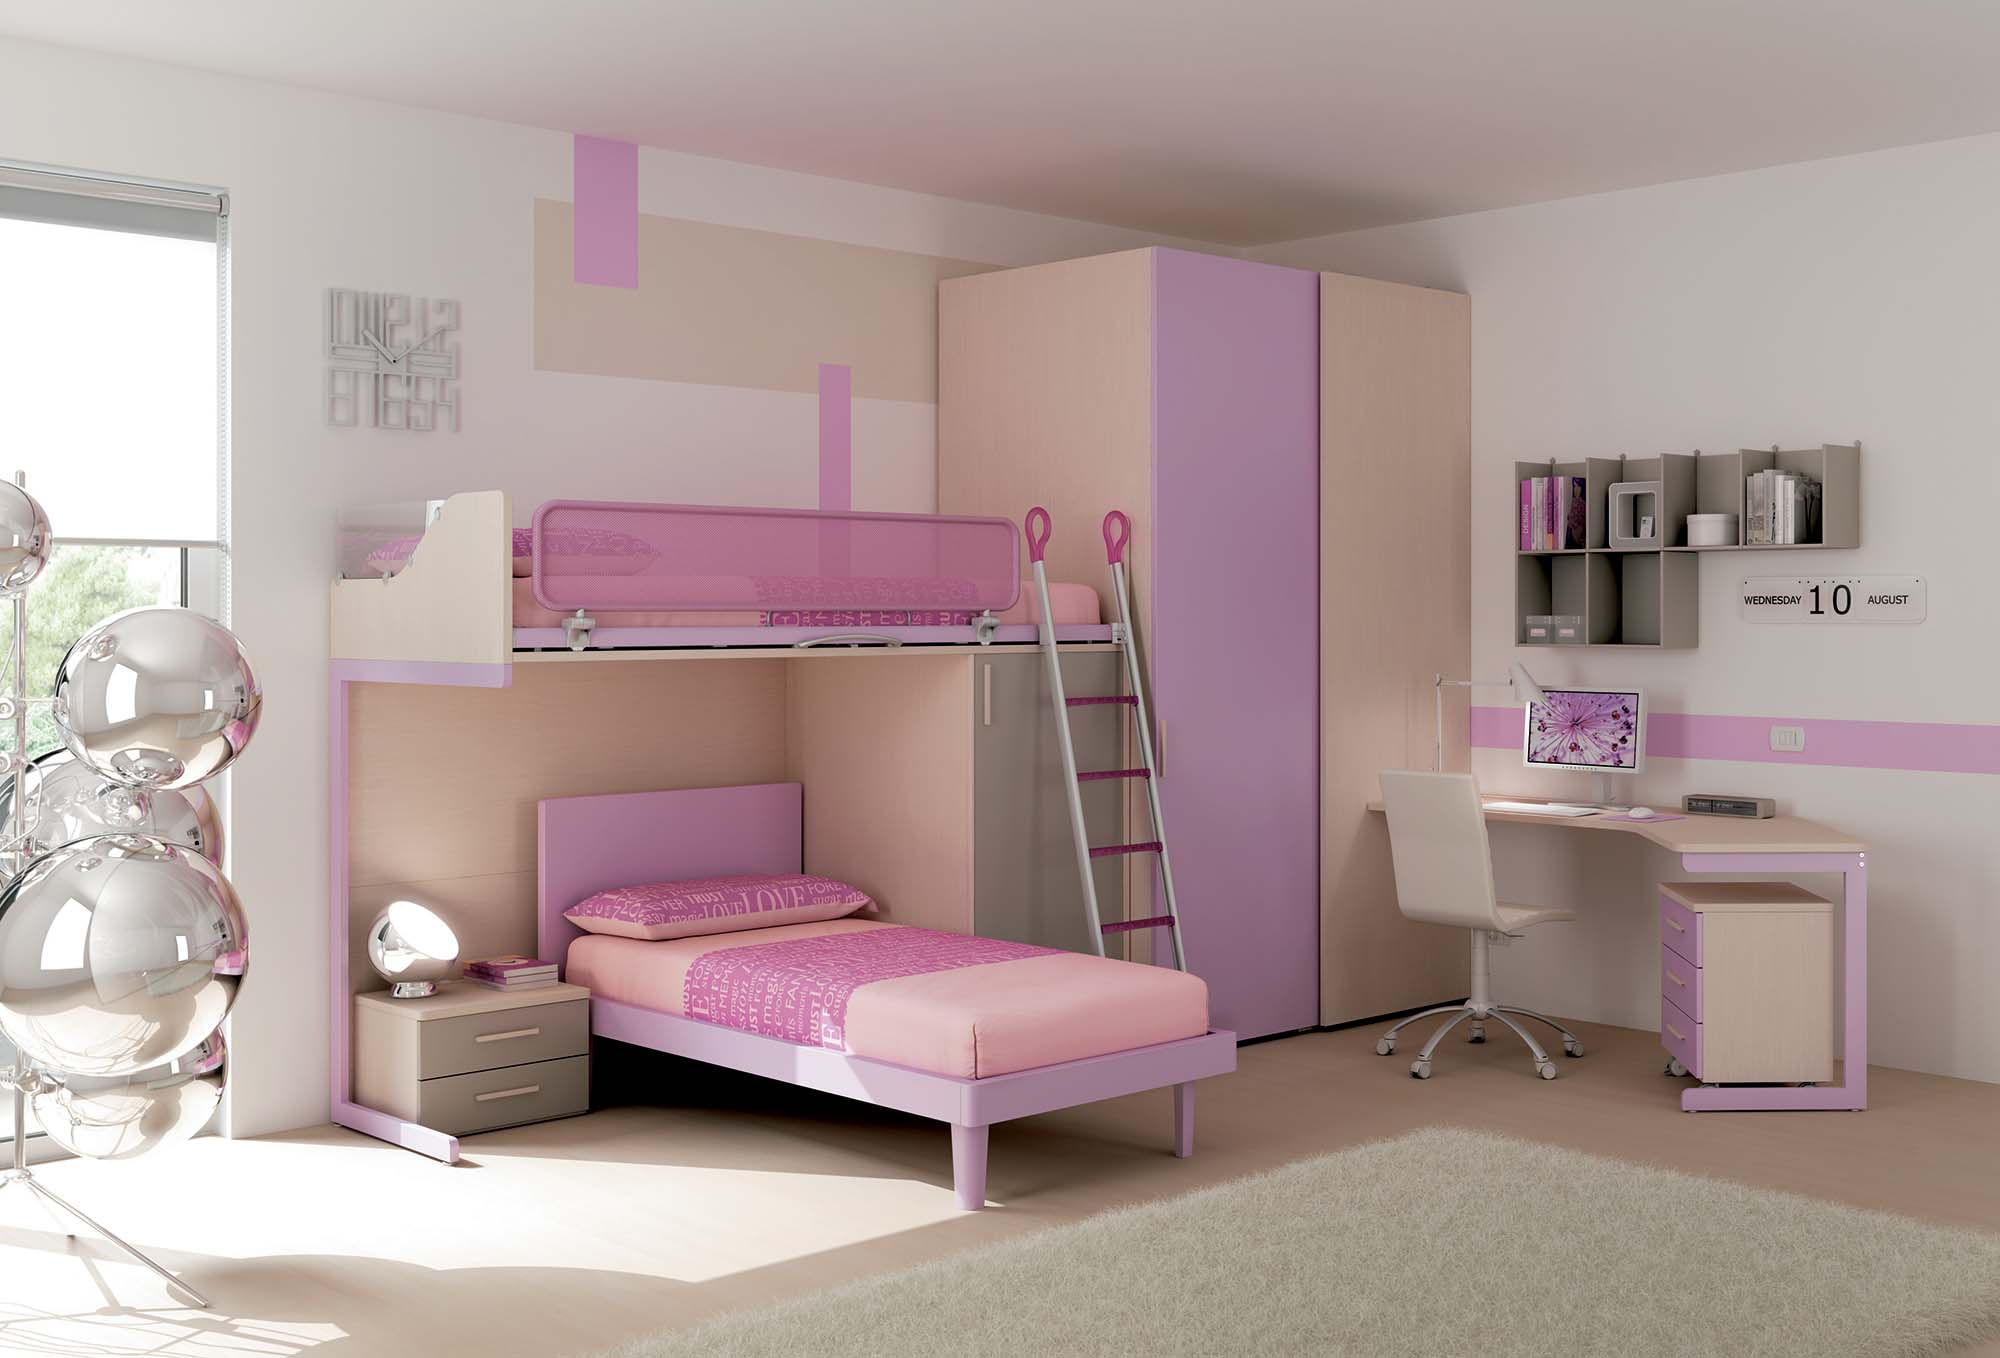 Chambre fille lit superpose tunisie - Chambre garcon lit superpose ...